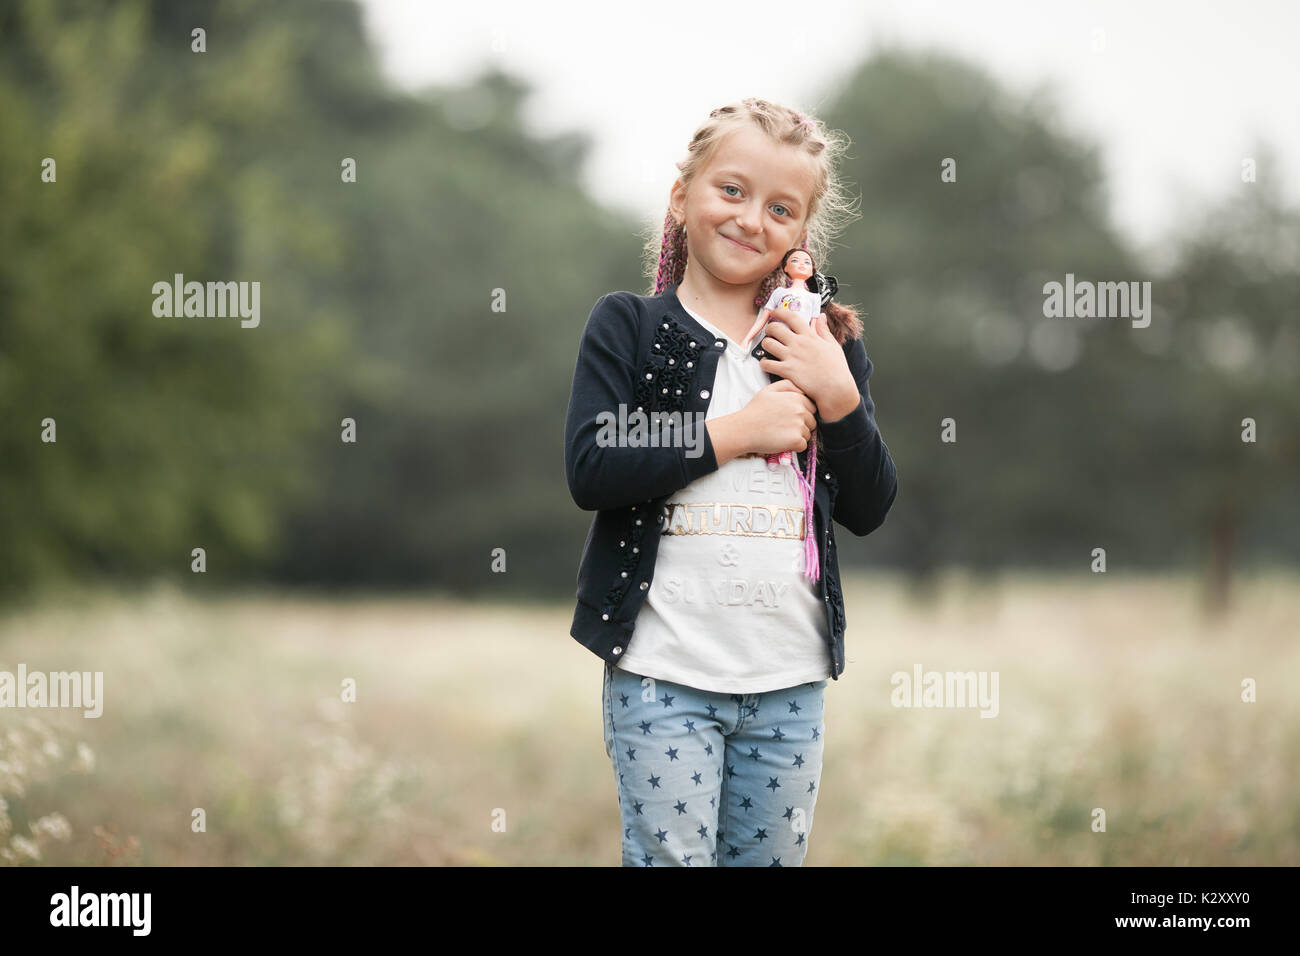 Child girl with pigtails smiles and plays with her doll on walk. - Stock Image